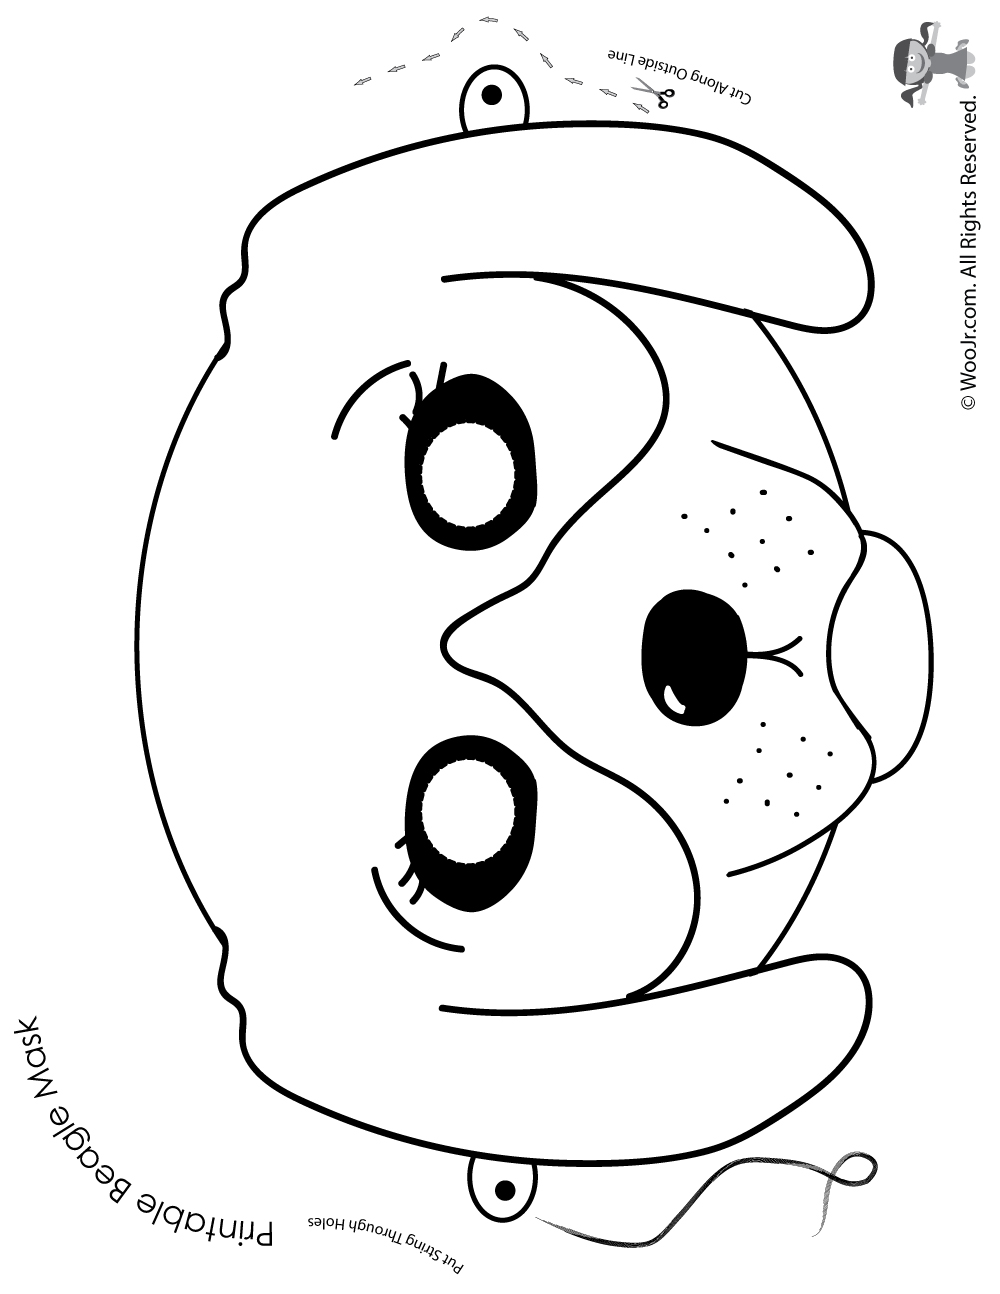 Beagle Mask Coloring Page Woo Kids Activities Jpg 1000x1294 Dog Pages